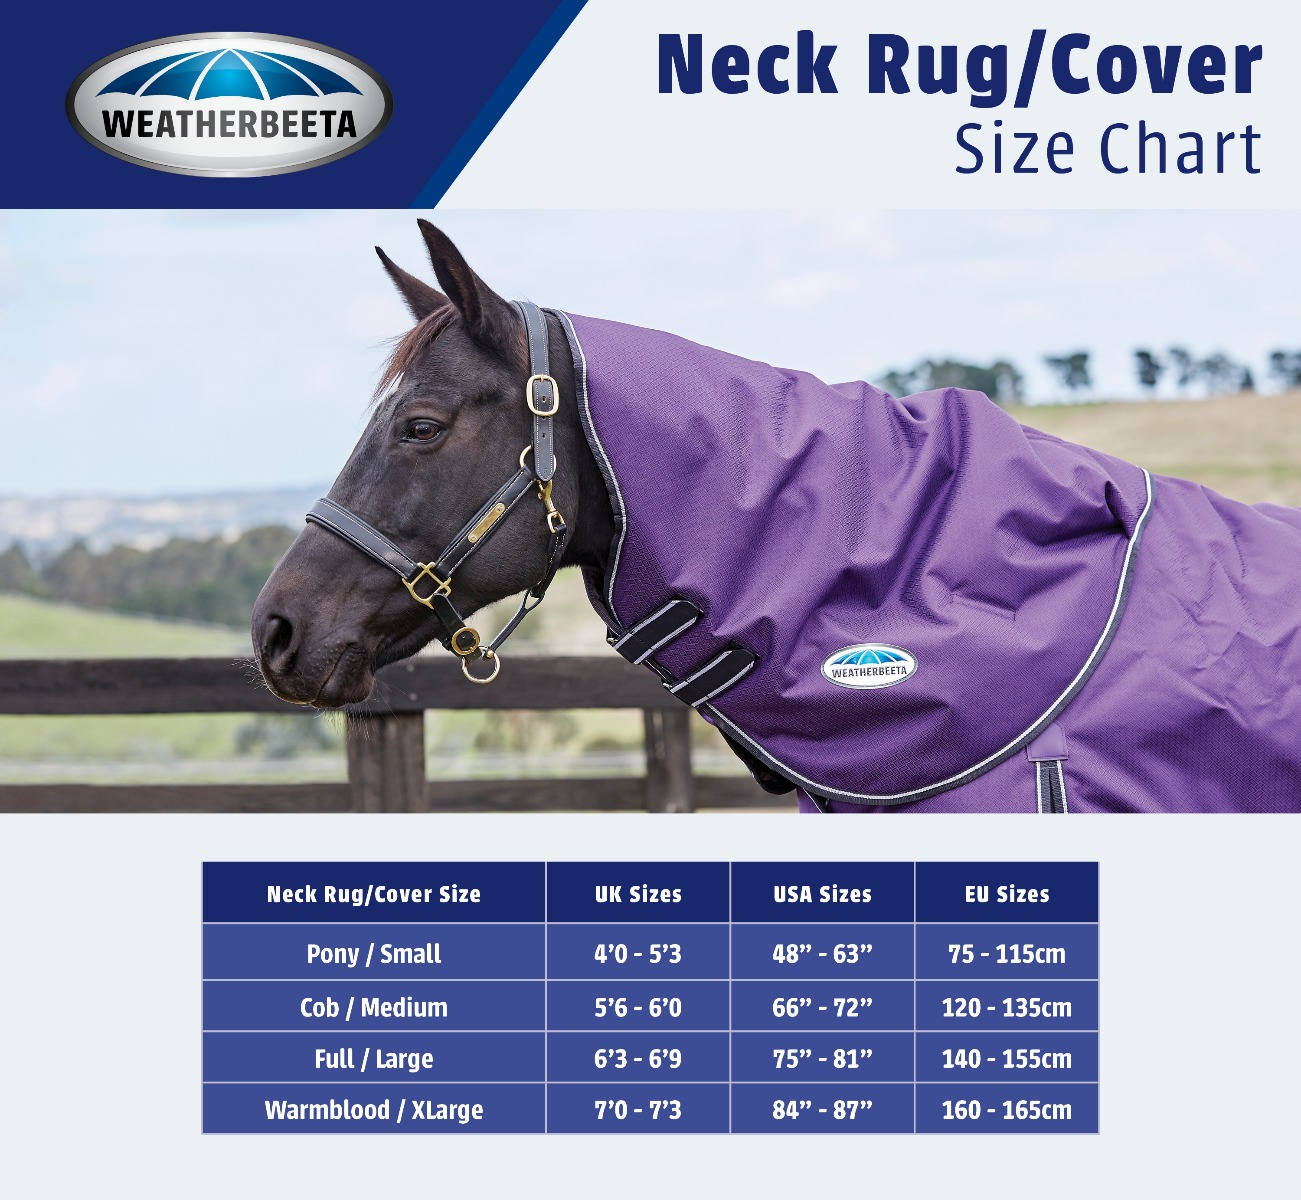 Neck Cover Size Guide